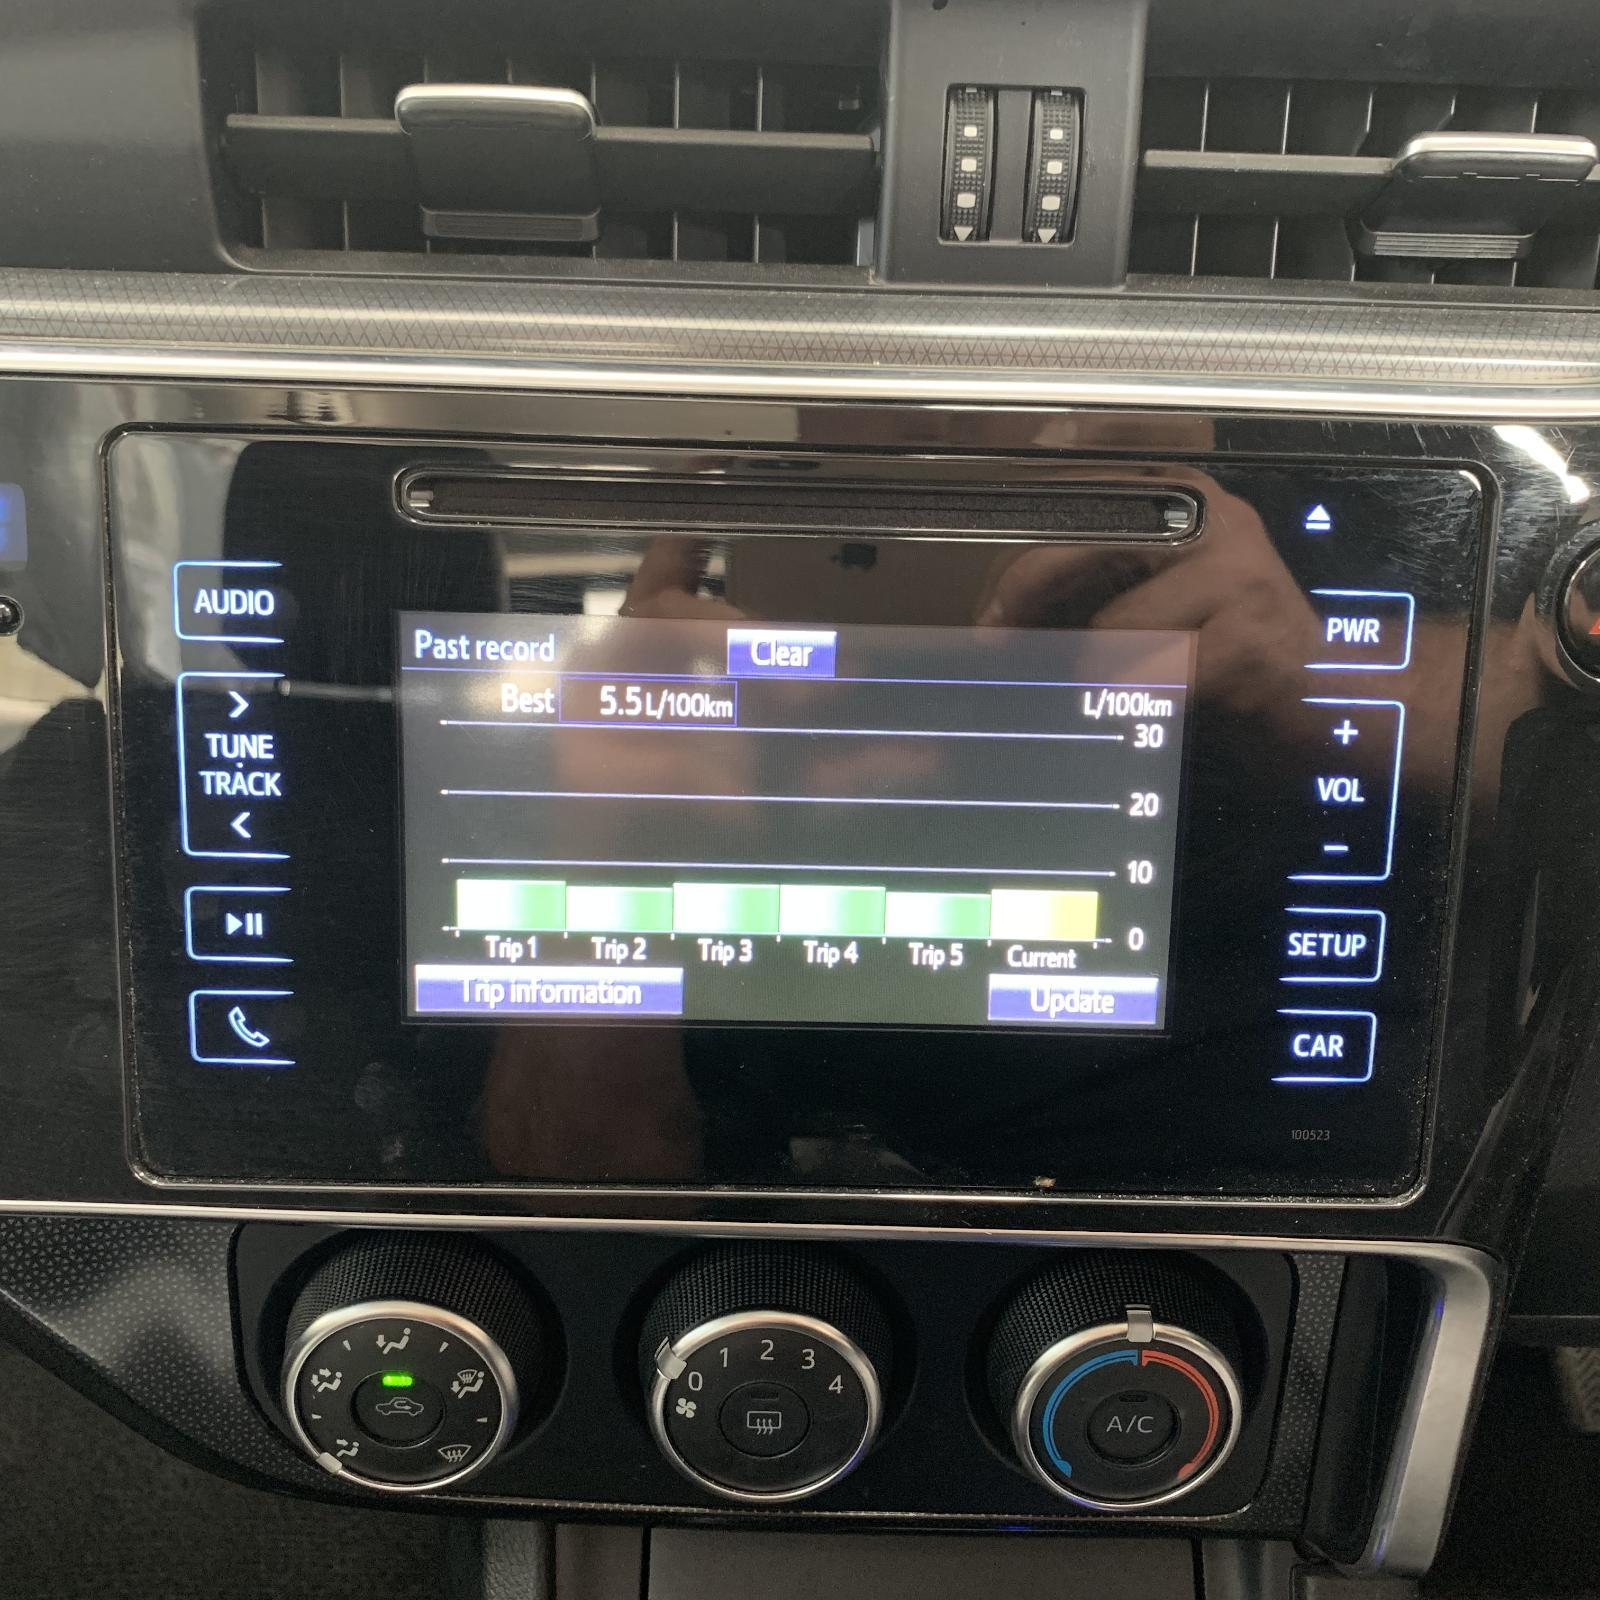 TOYOTA COROLLA, Radio/Cd/Dvd/Sat/Tv, 6.1IN TOUCH SCREEN (P/N ON FACE 100523), ZRE182R, HATCH, 03/15-